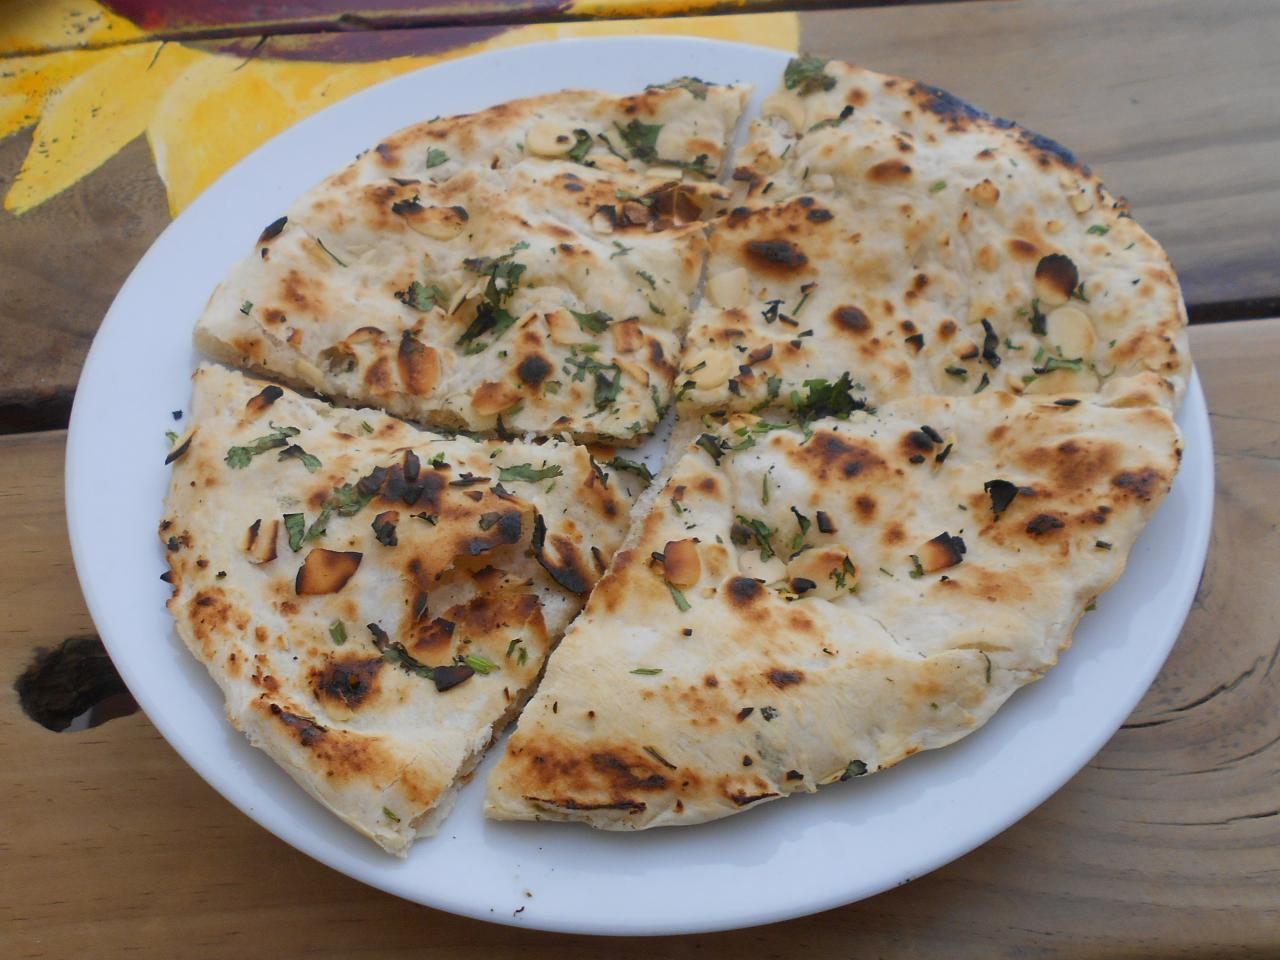 The coconut-flavoured naan bread